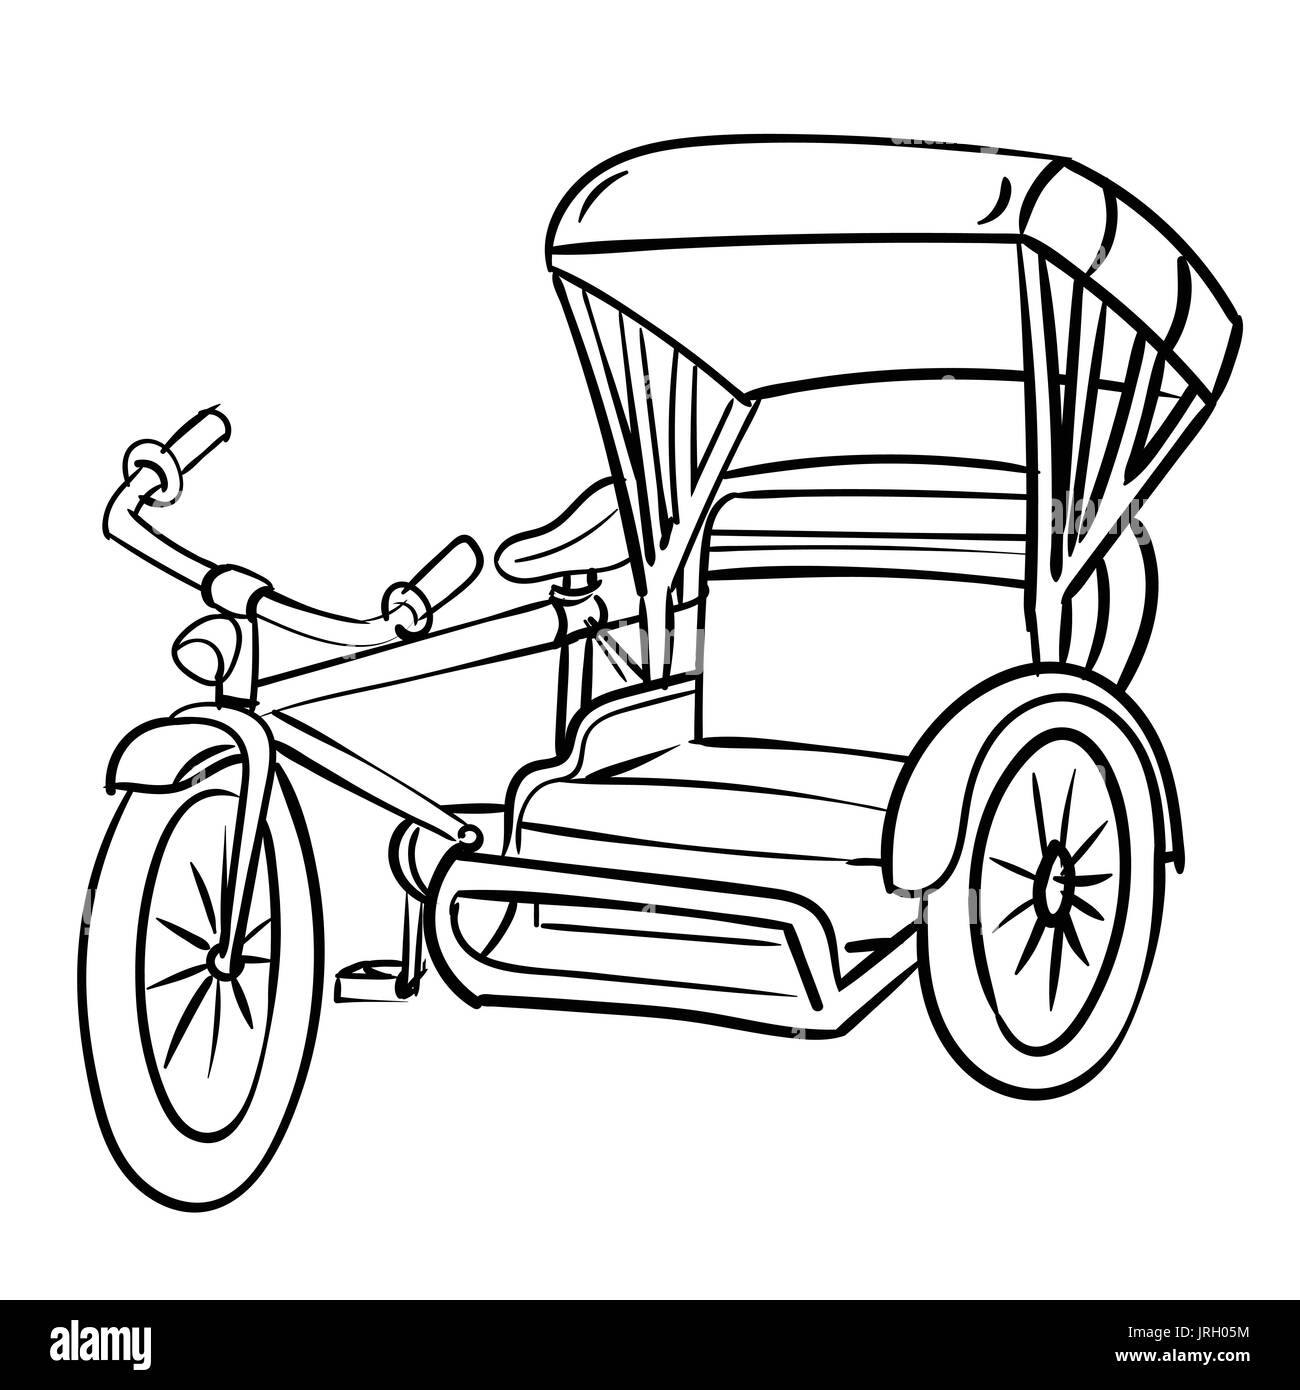 Hand Drawn Sketch Of Tricycle Black And White Simple Line Vector Stock Vector Image Art Alamy